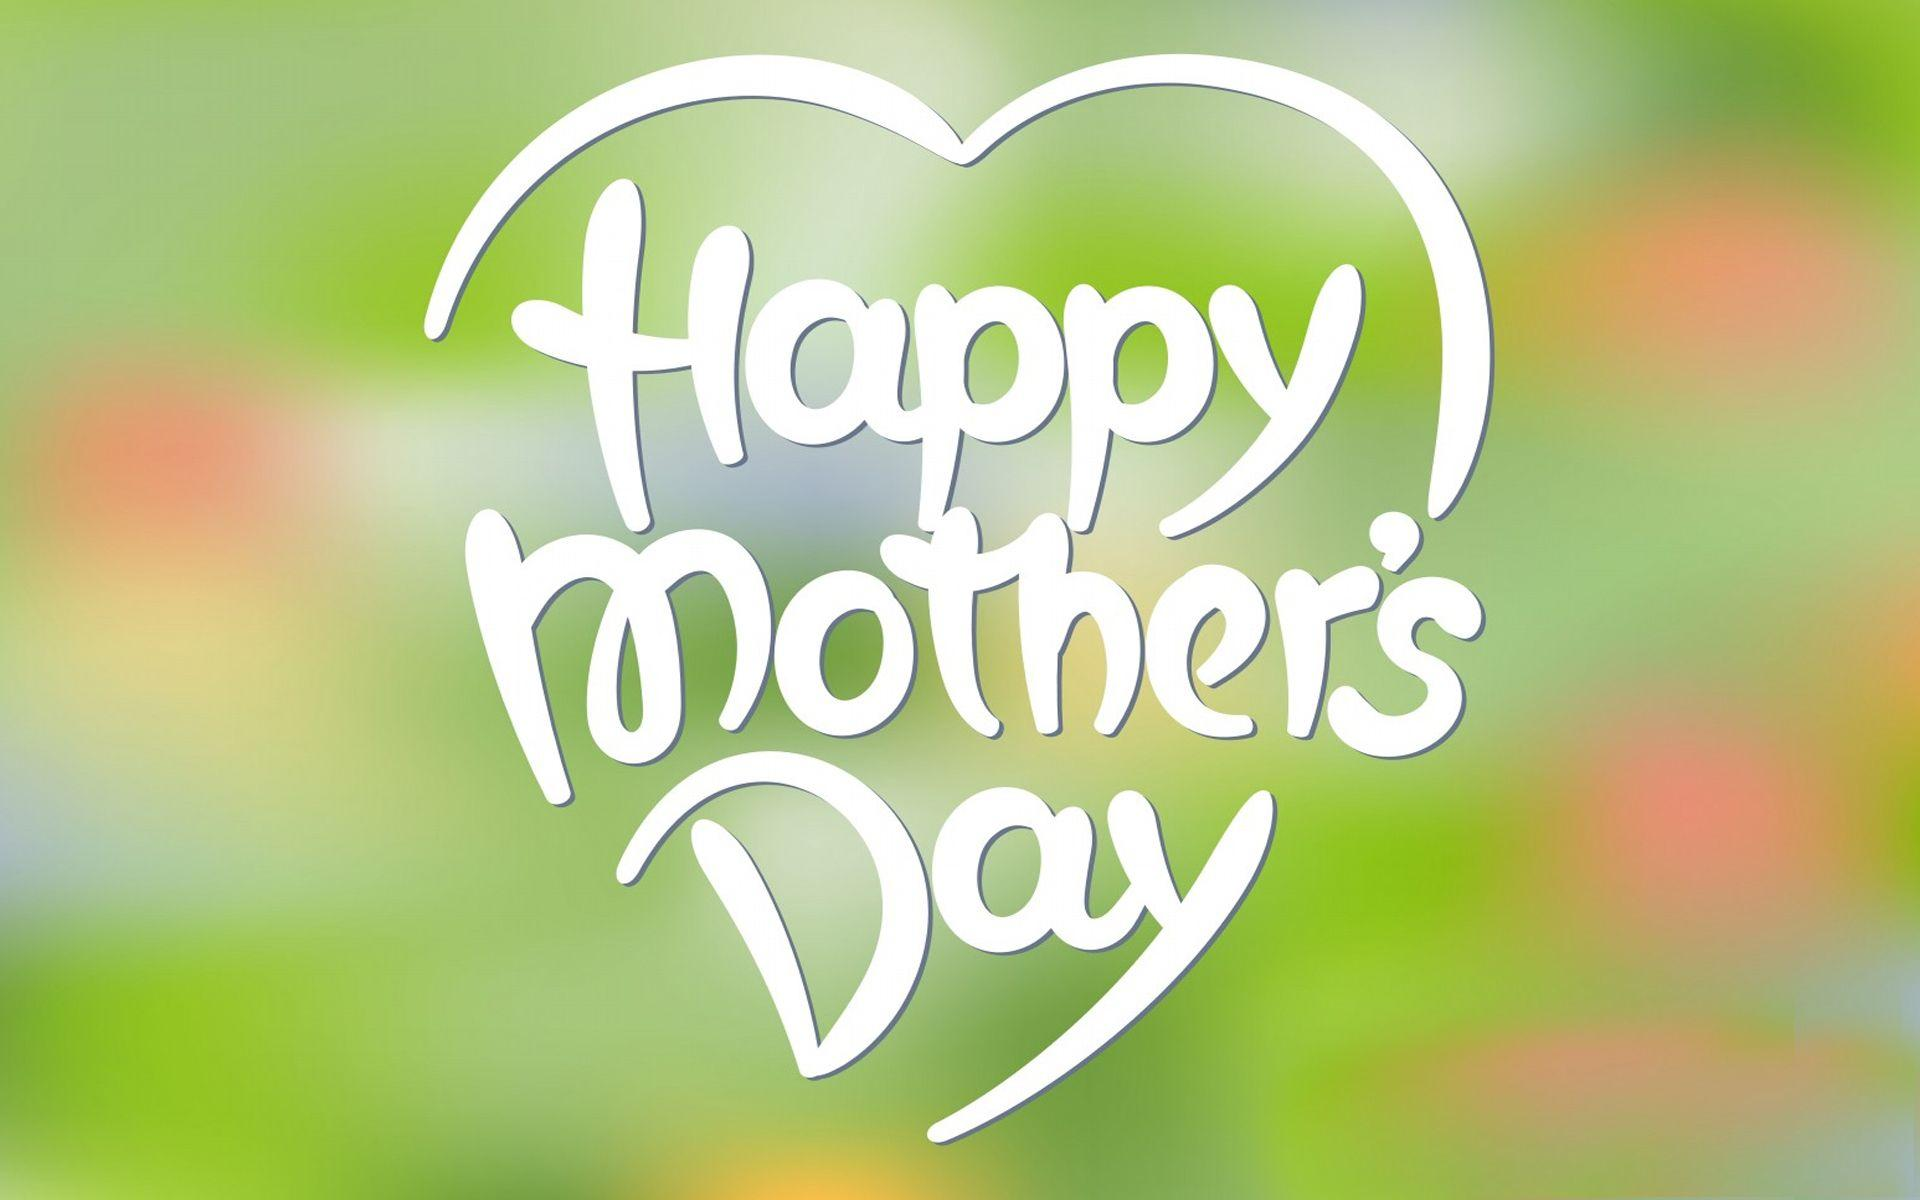 mothers day wallpapers Archives - PolesMag